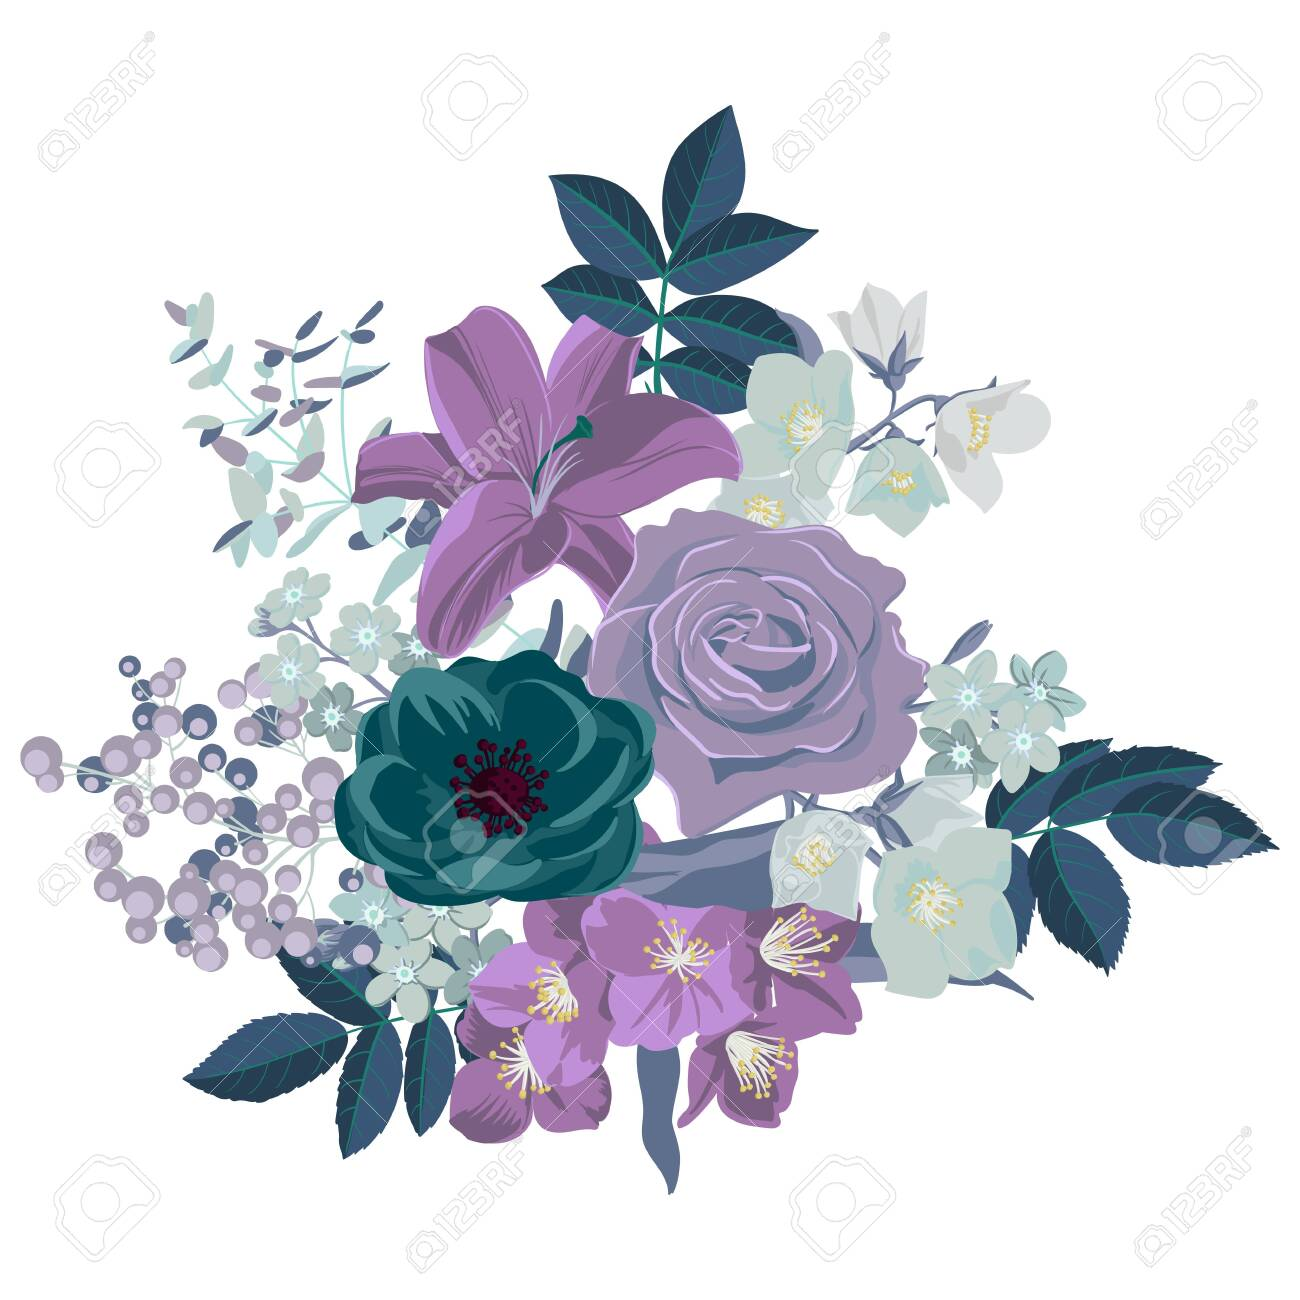 vector drawing flowers and leaves ,isolated floral design elements at white background, hand drawn illustration - 140557985